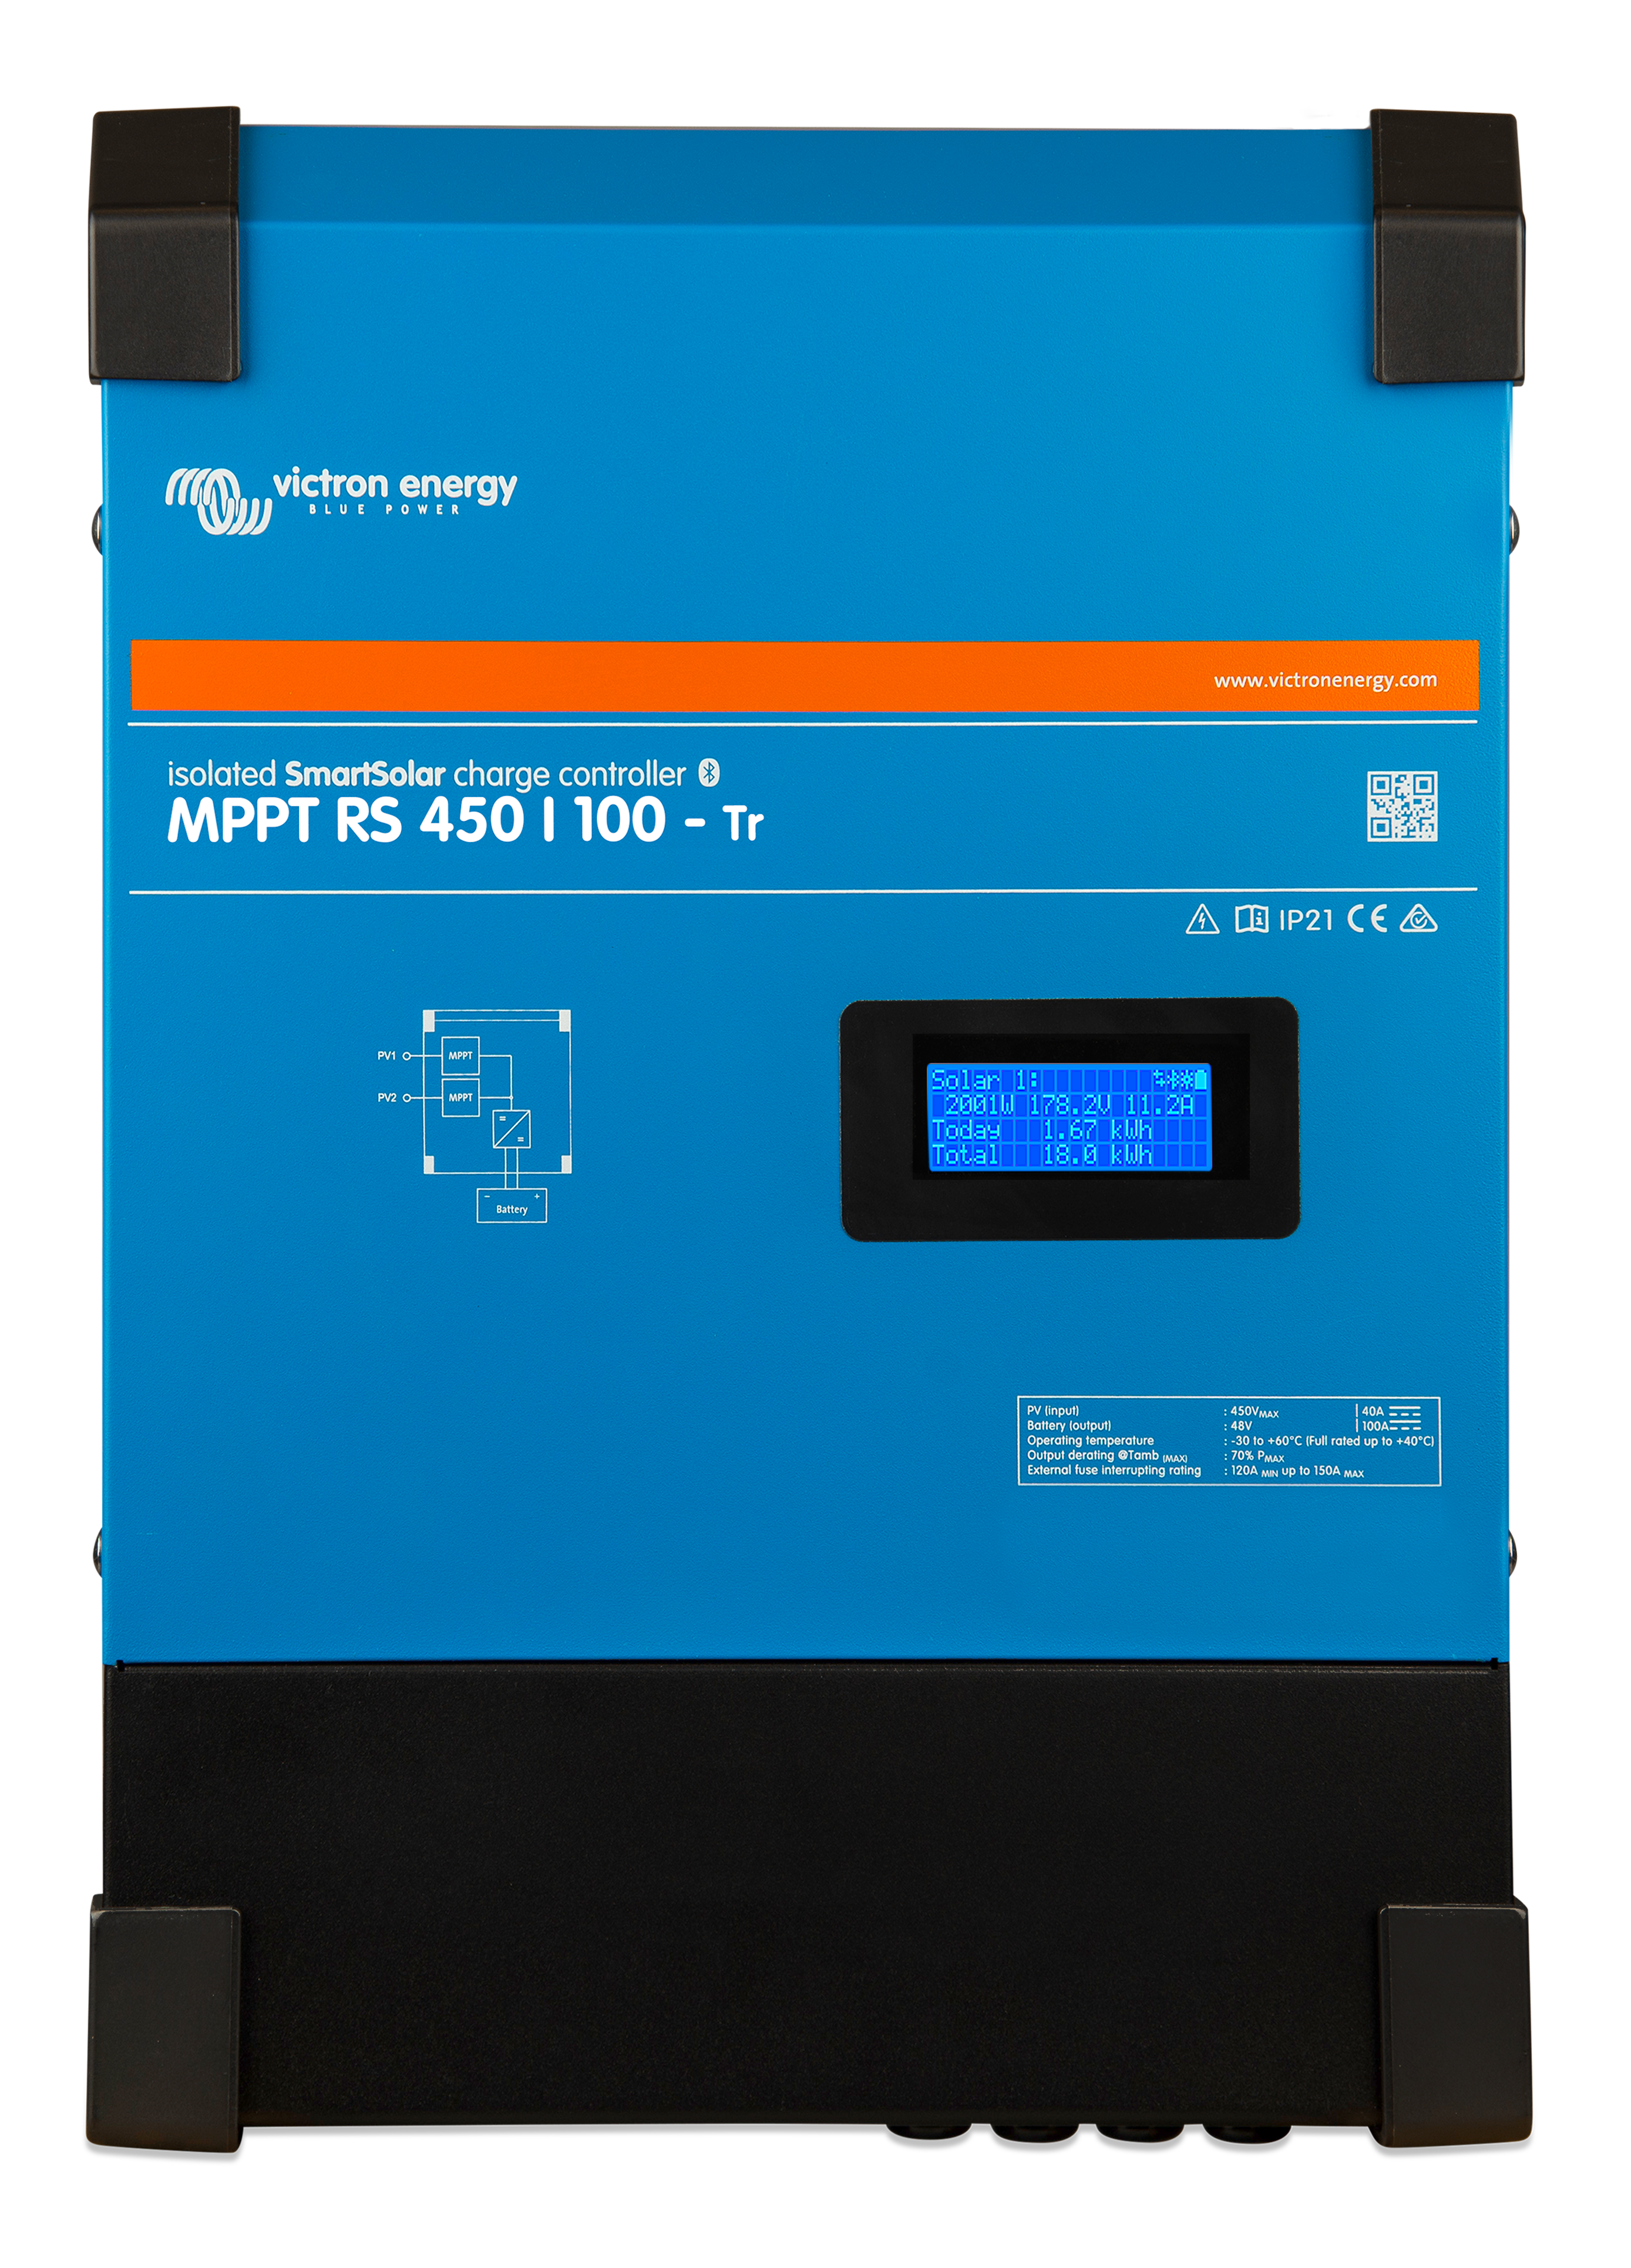 Bmv 700 Series Victron Energy The Original Amp Gauge System Served As Main Power Distribution Hours